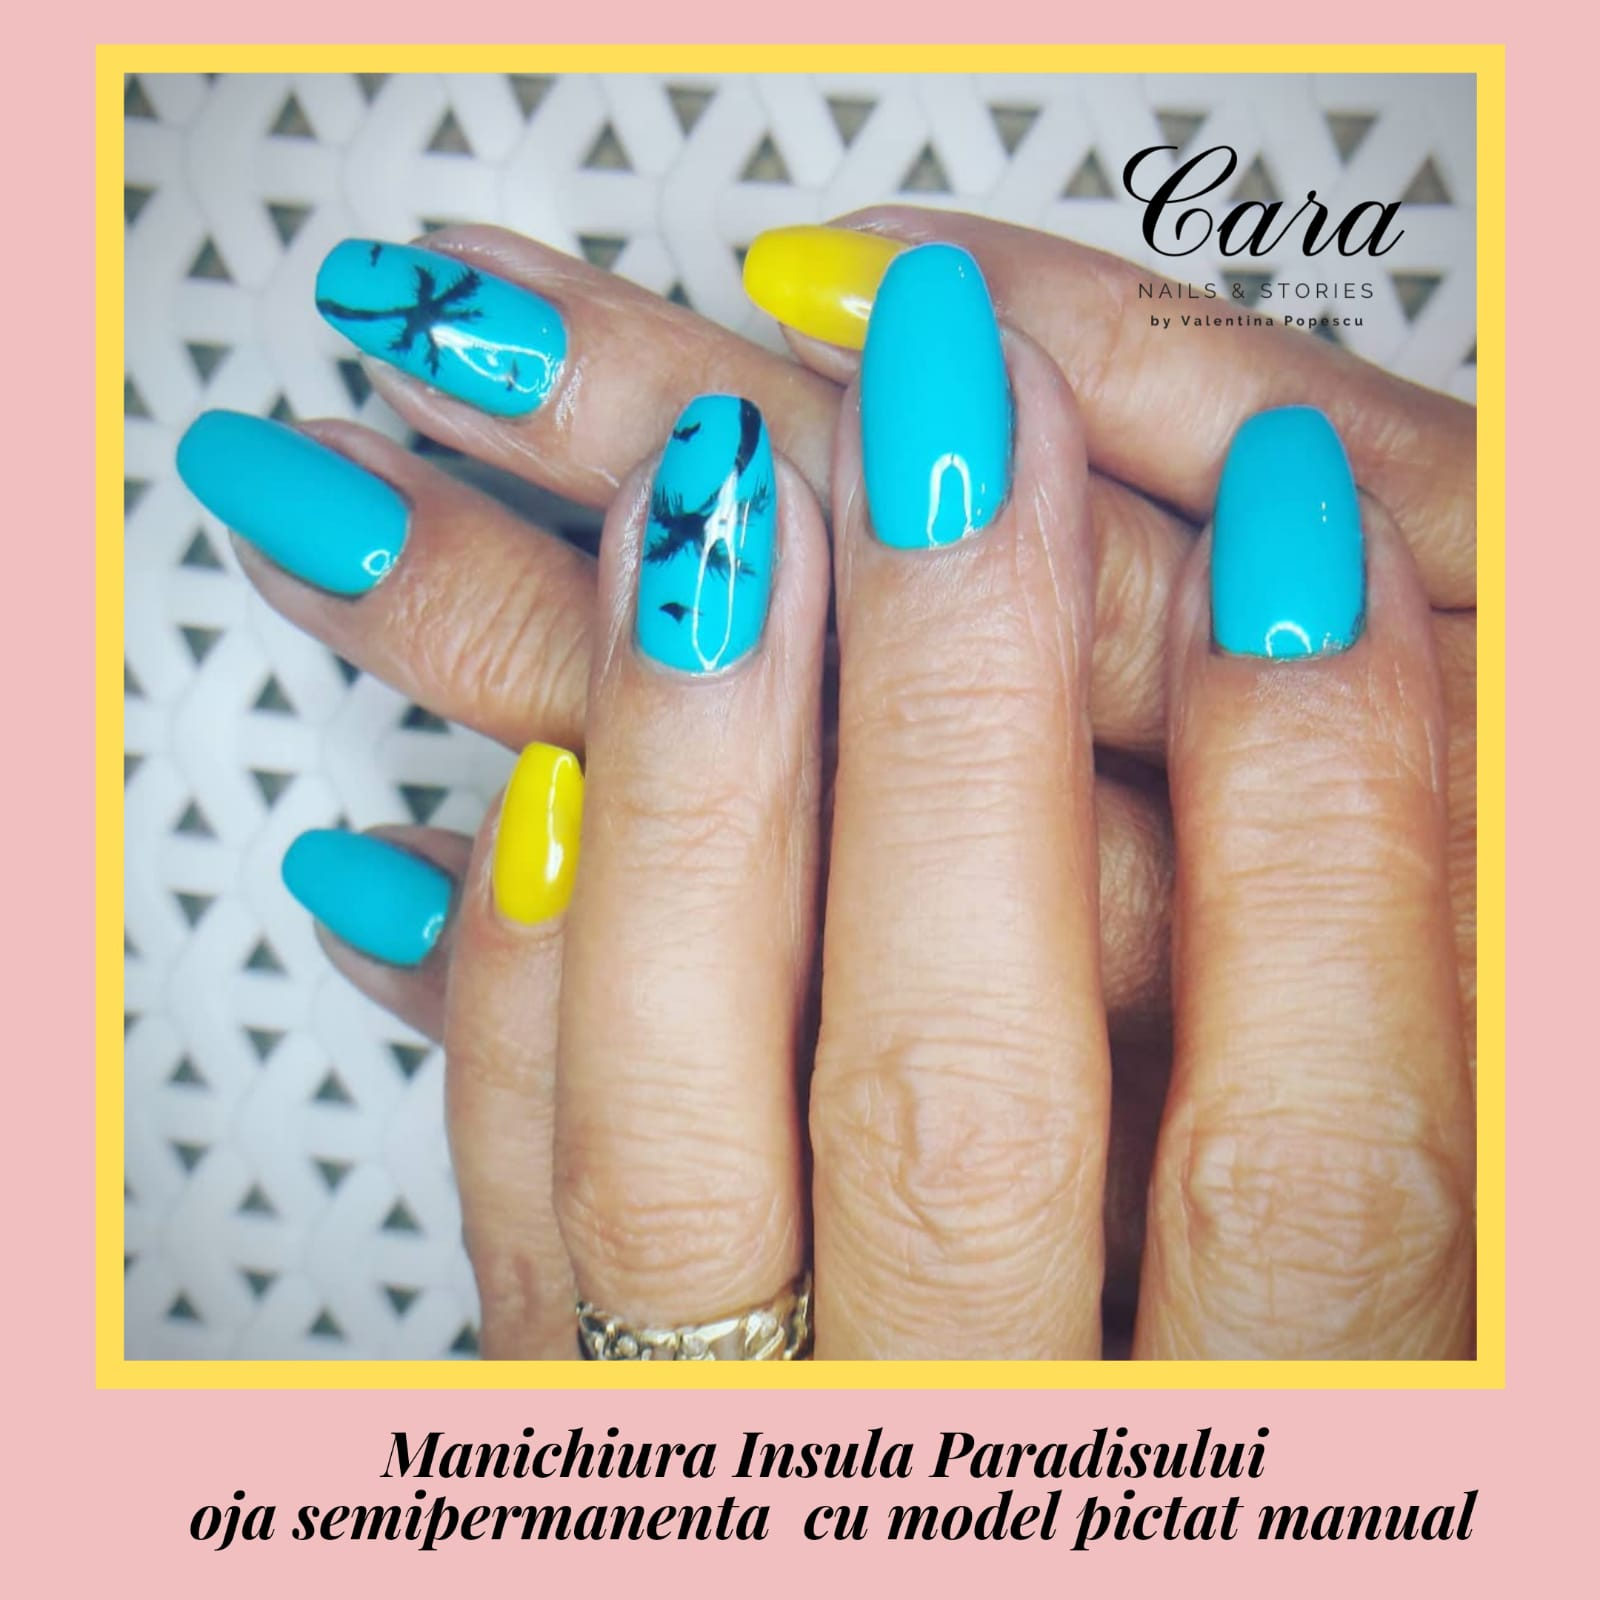 Cara Nails & Stories by Valentina Popescu